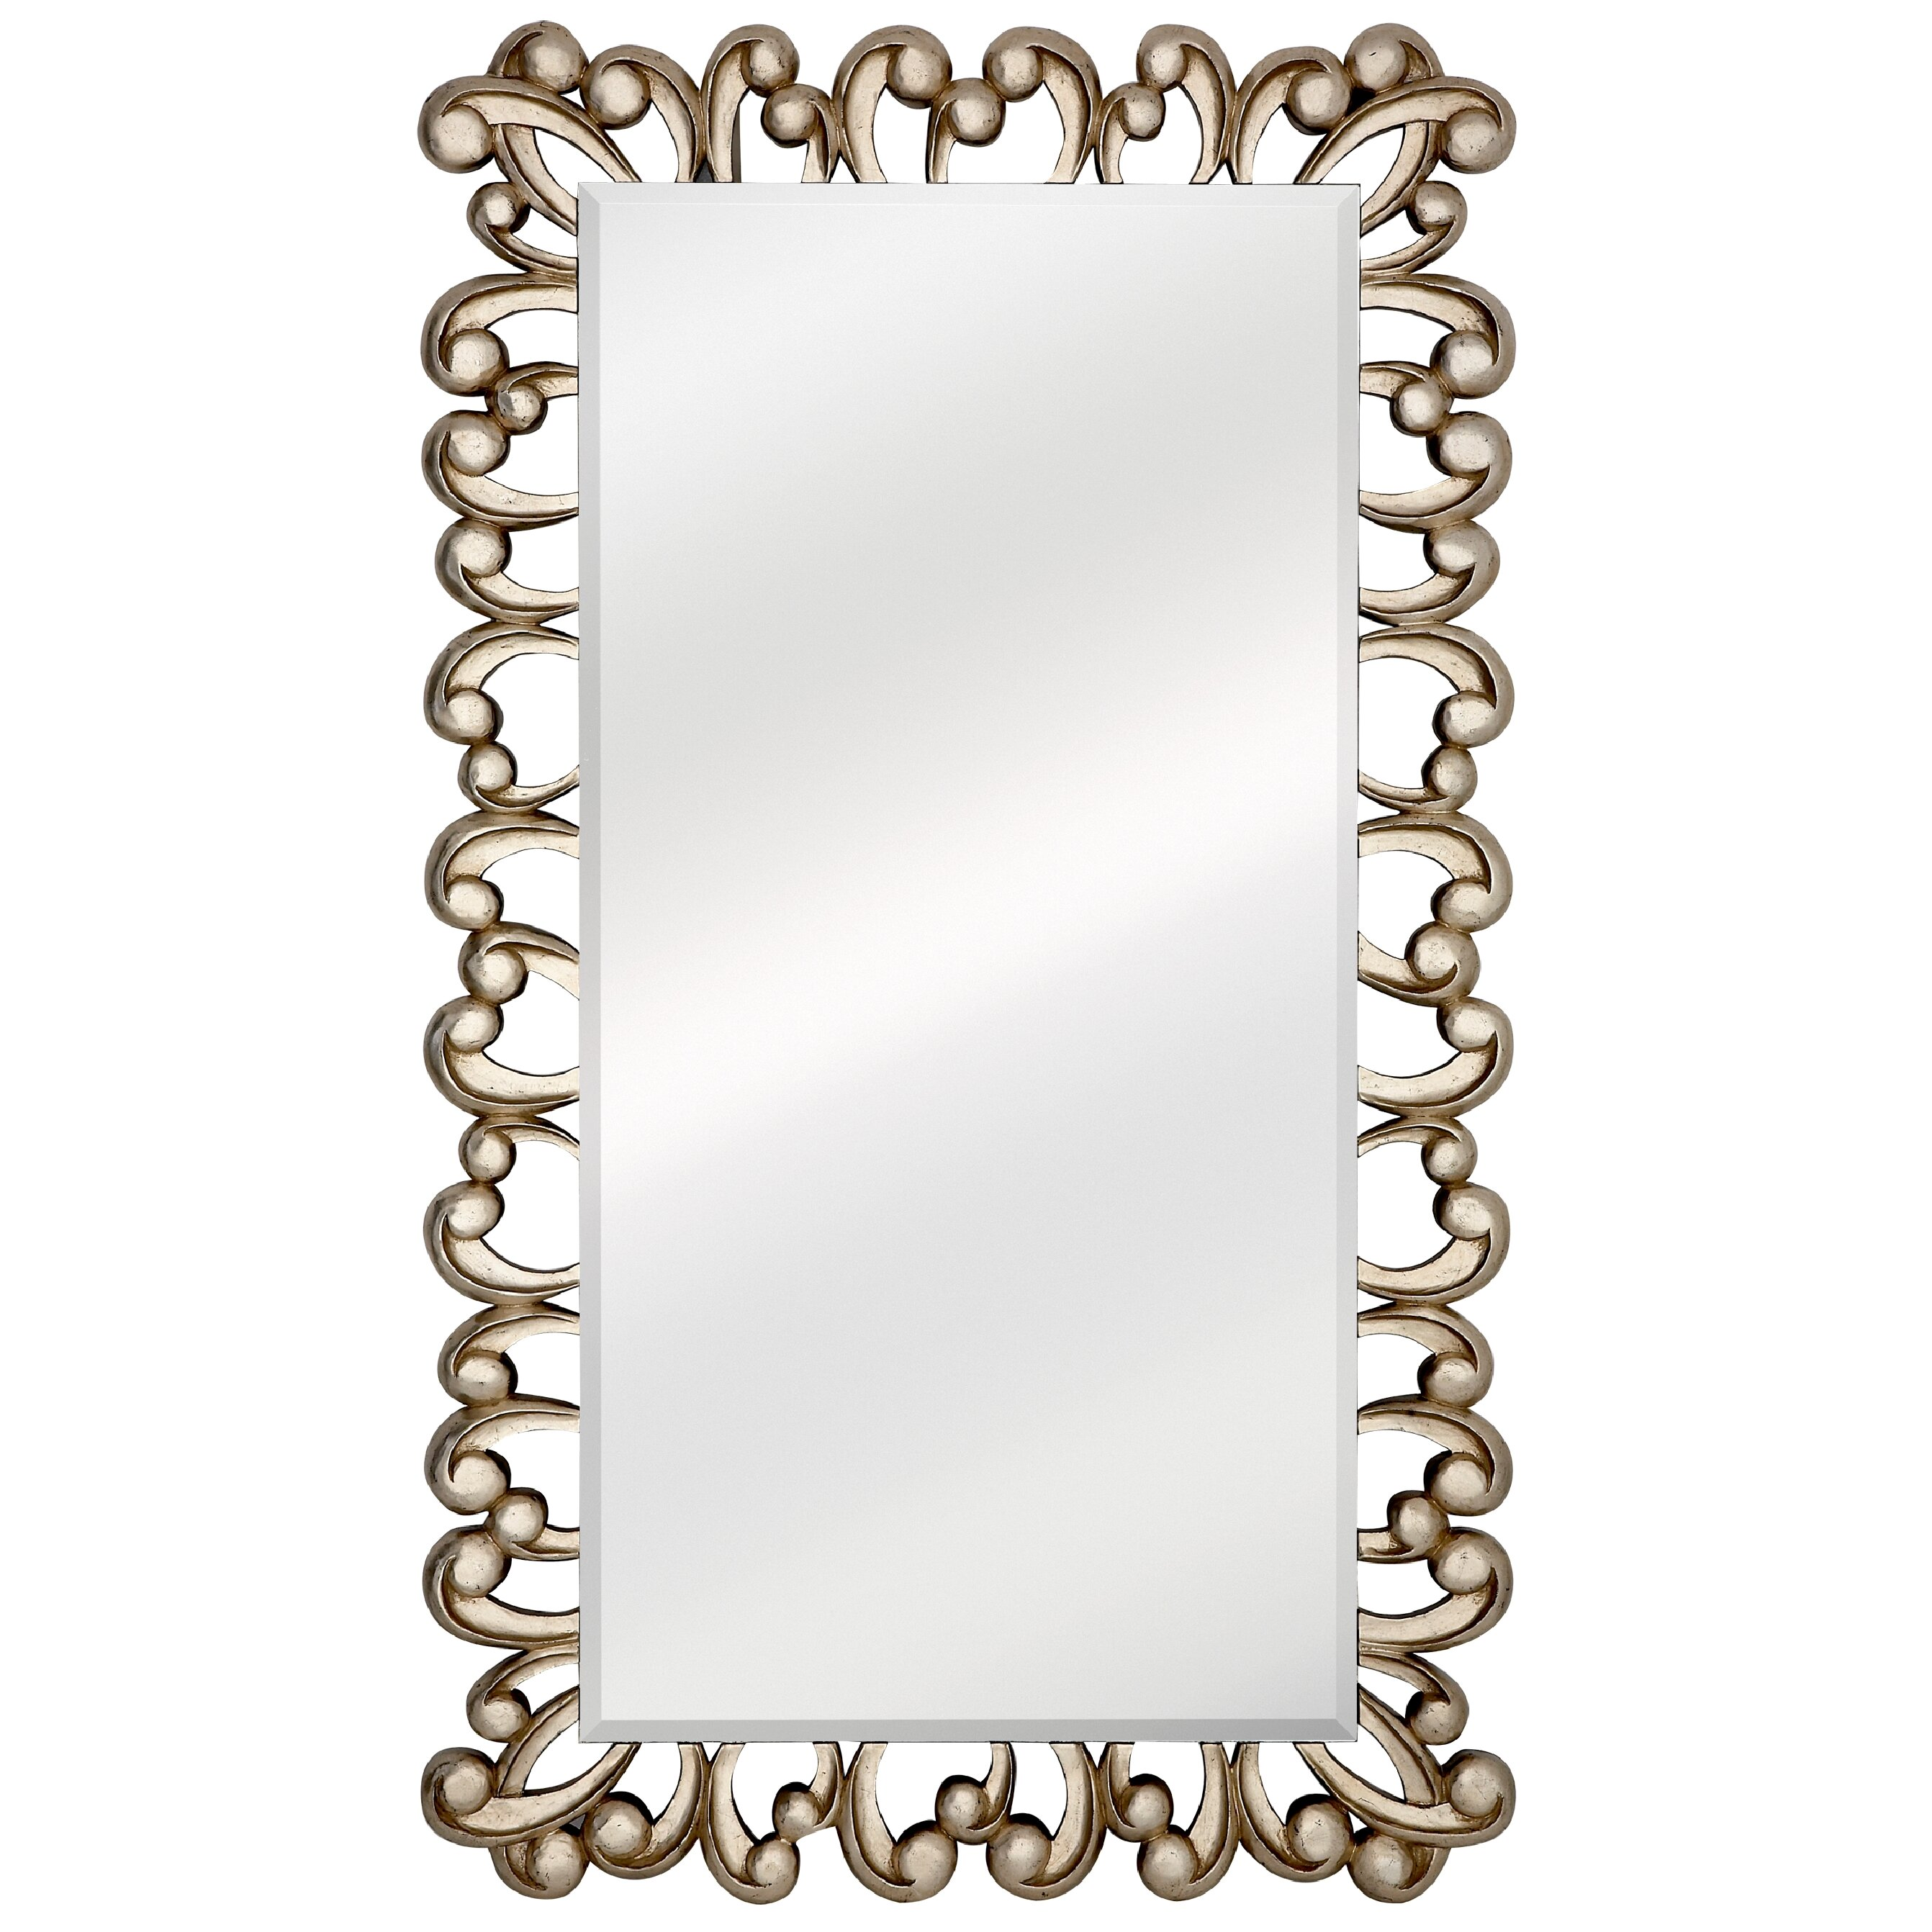 Majestic mirror large stylish silver rectangular beveled for Large silver decorative mirrors